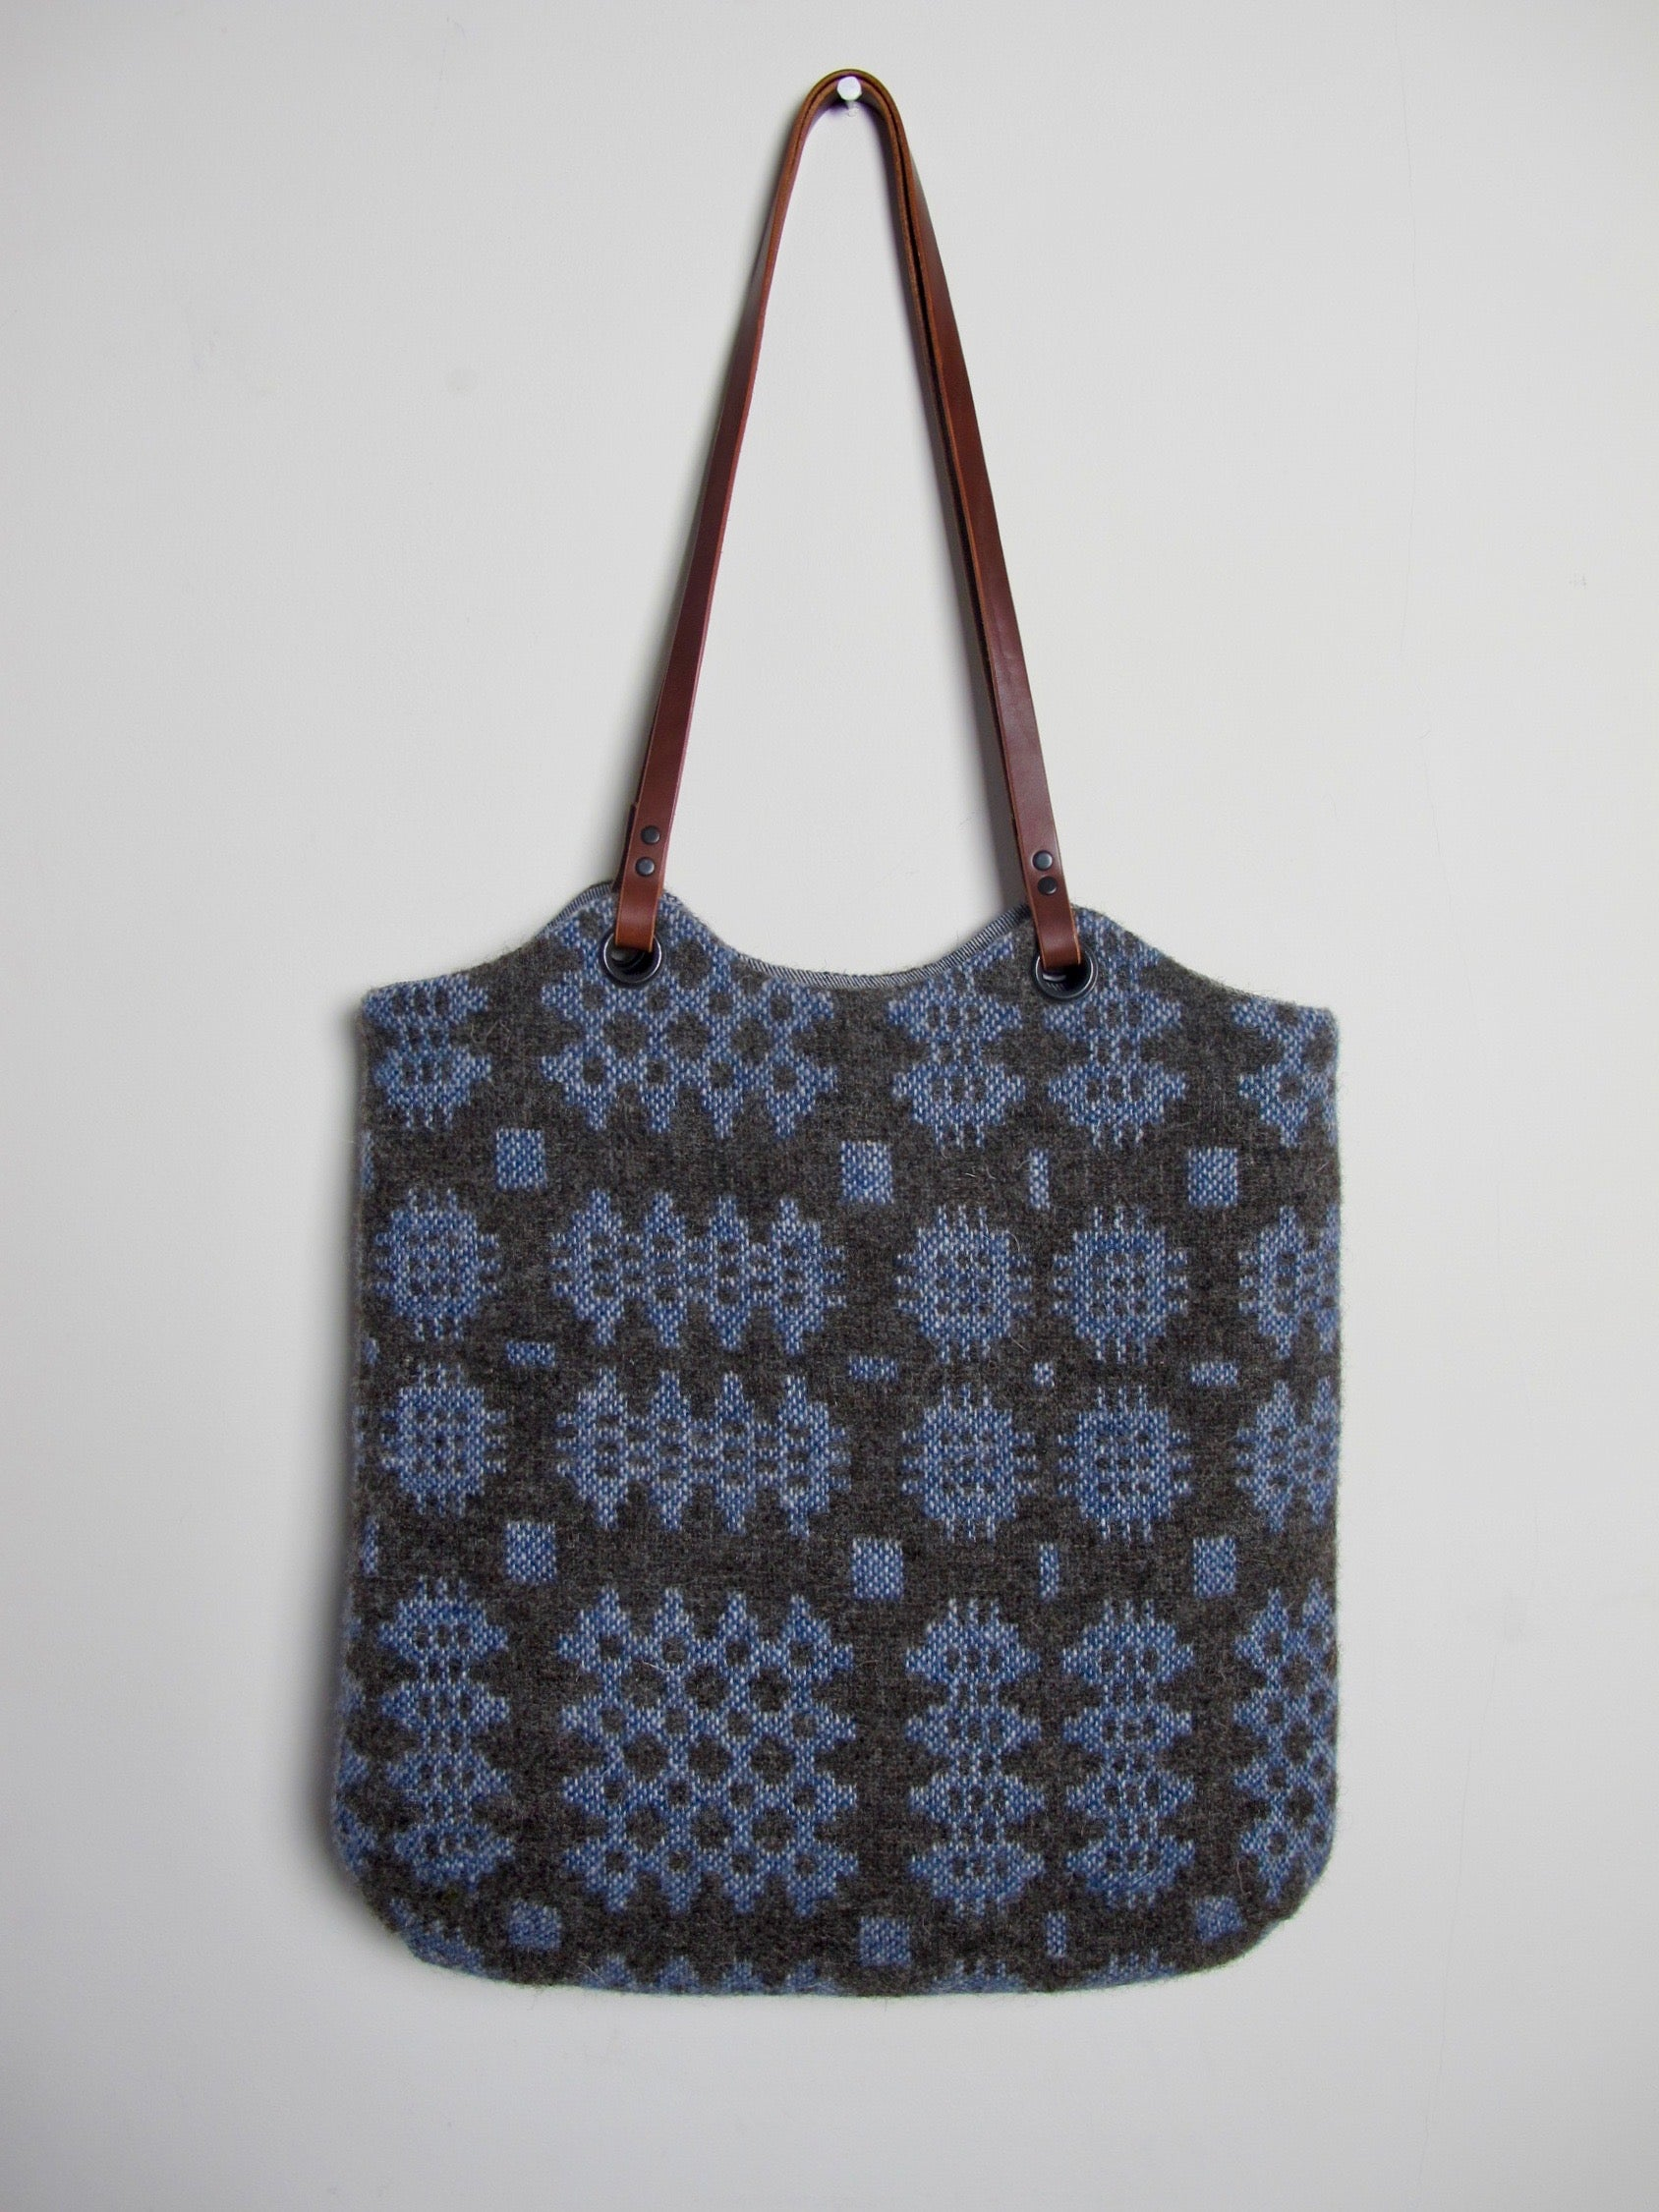 Tapestry Tote - Lottie Blue I